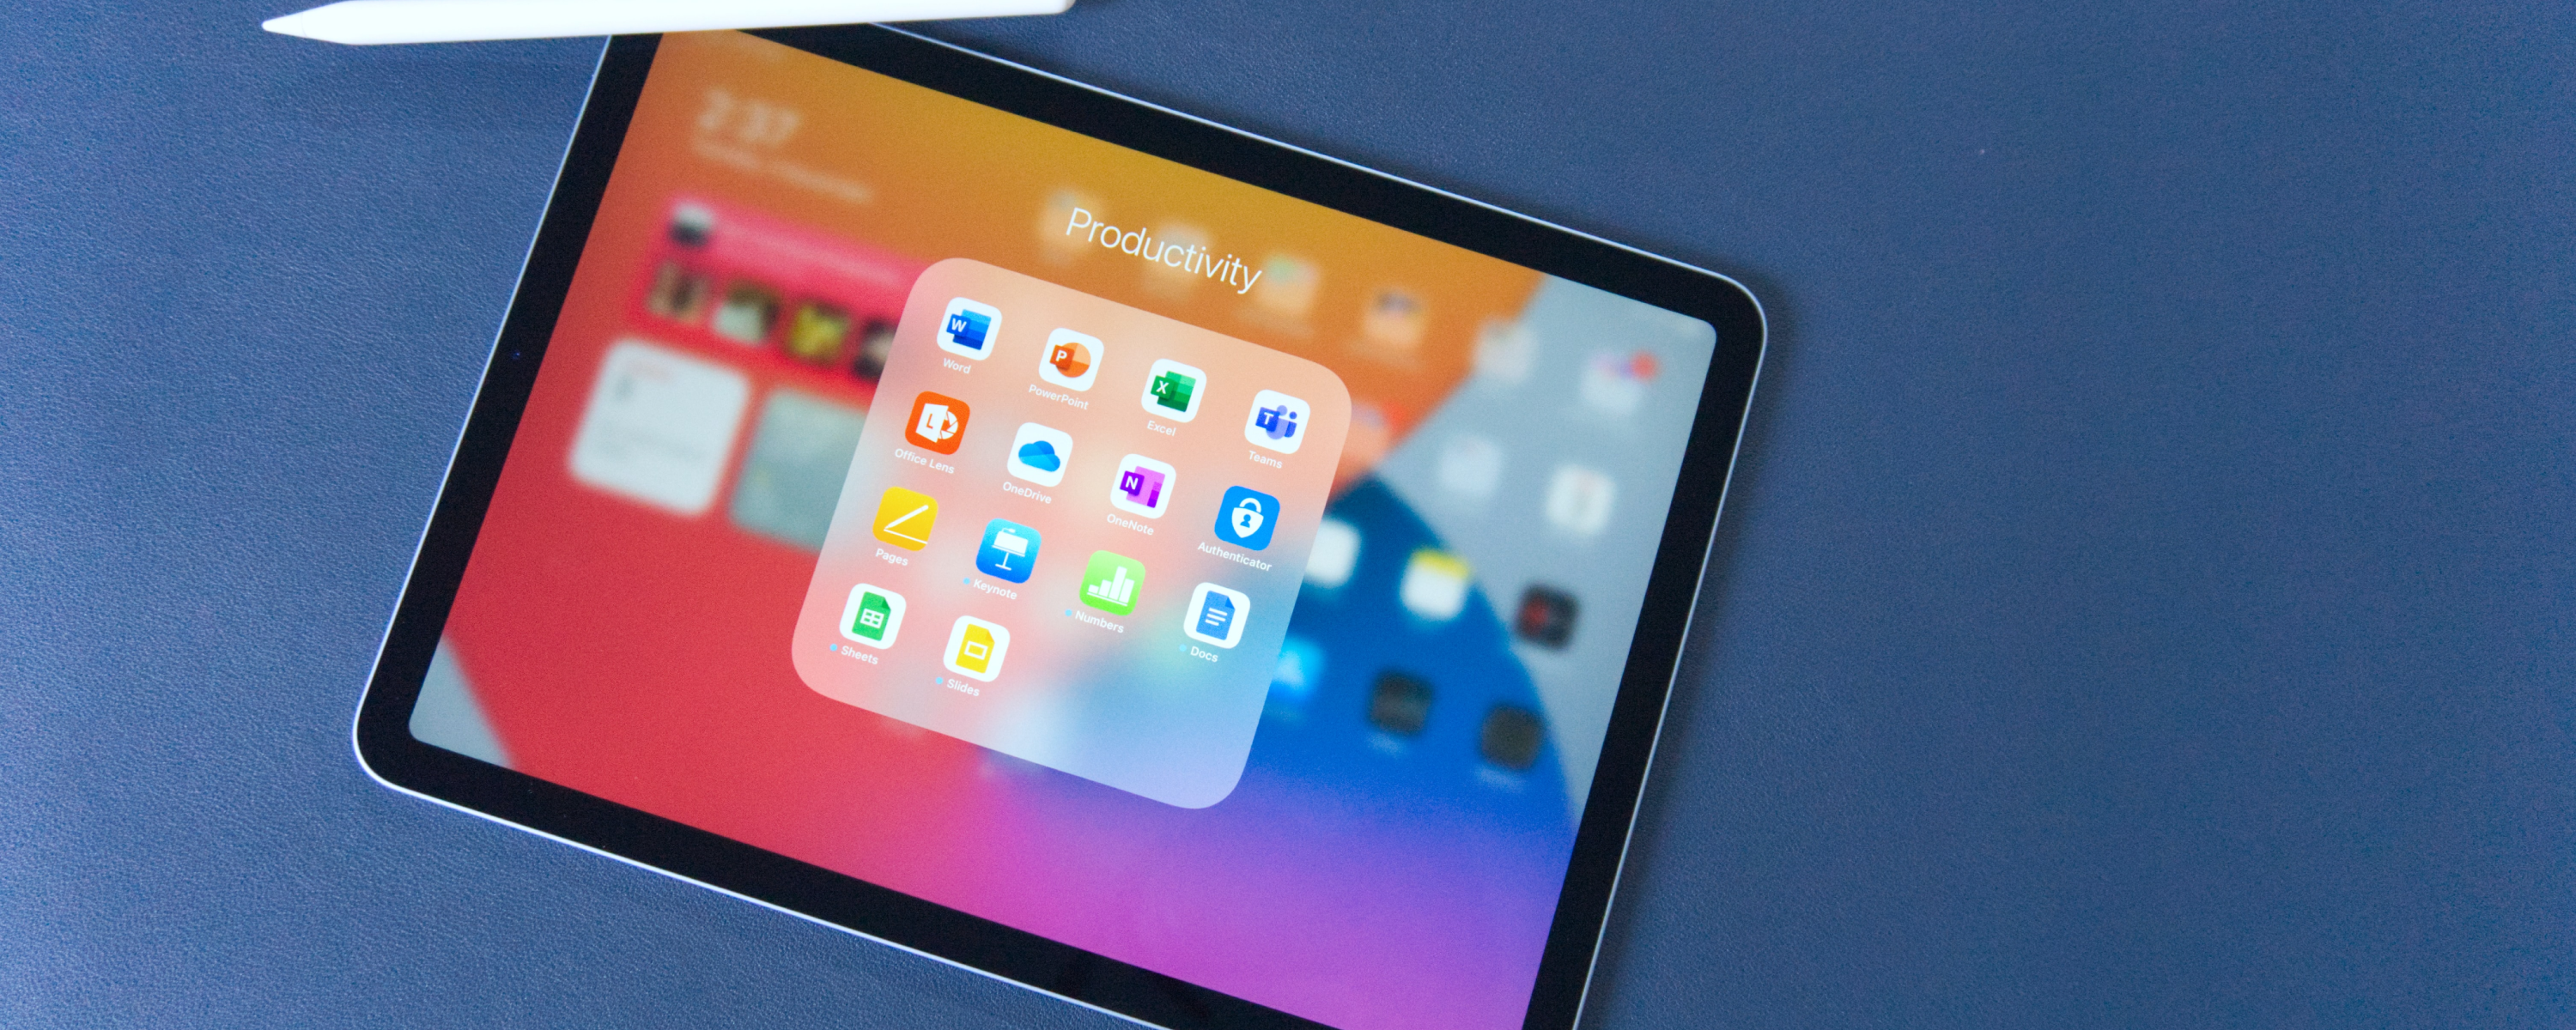 15 Best Apps for your iPad that Should be on Your List